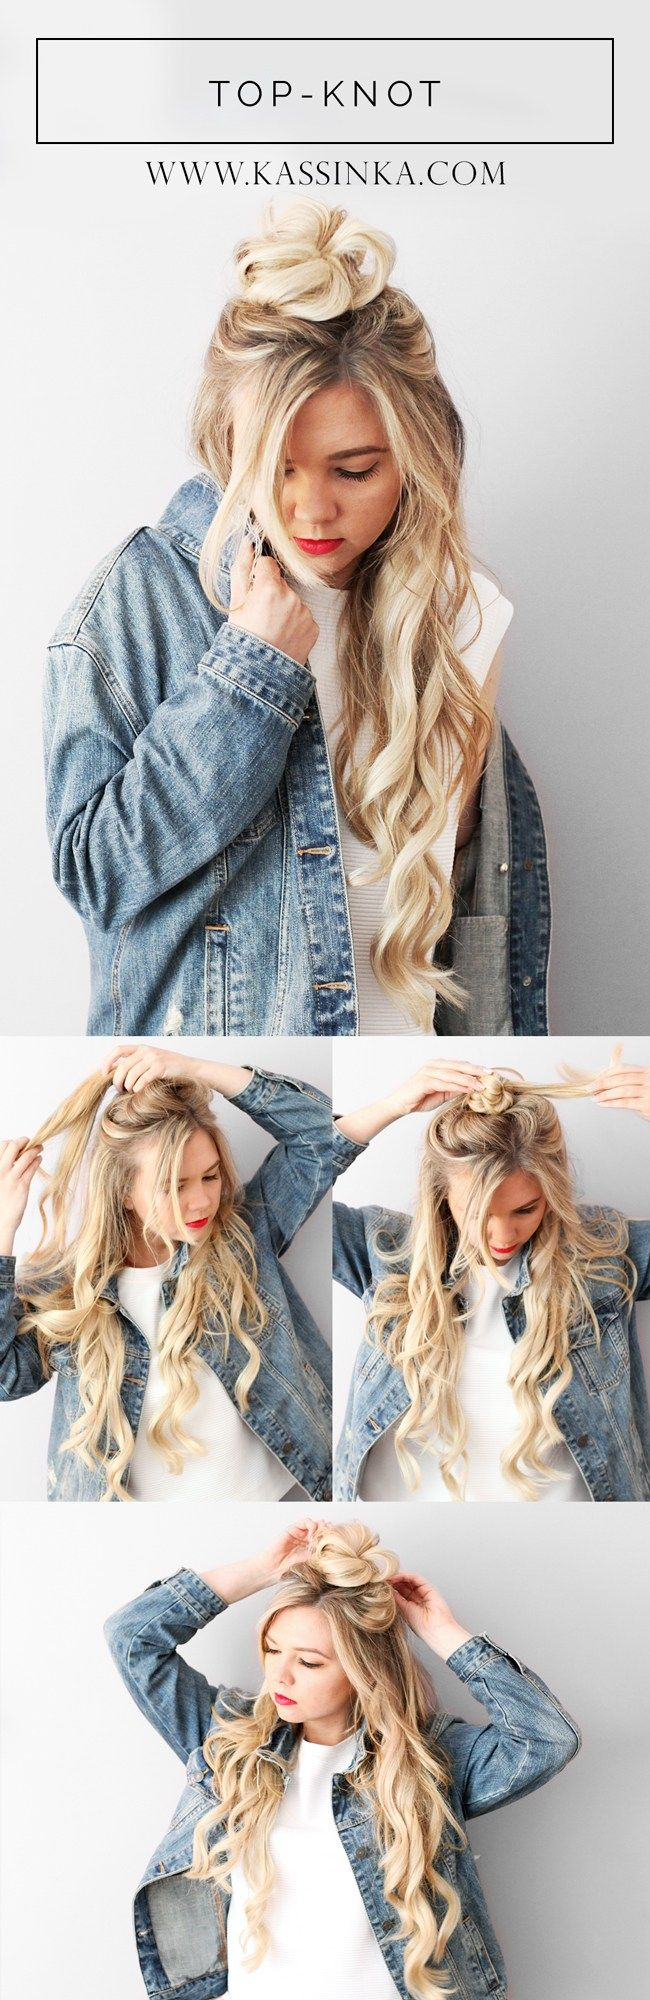 Best 25+ Top knot hairstyle ideas on Pinterest | Knot hairstyles ...